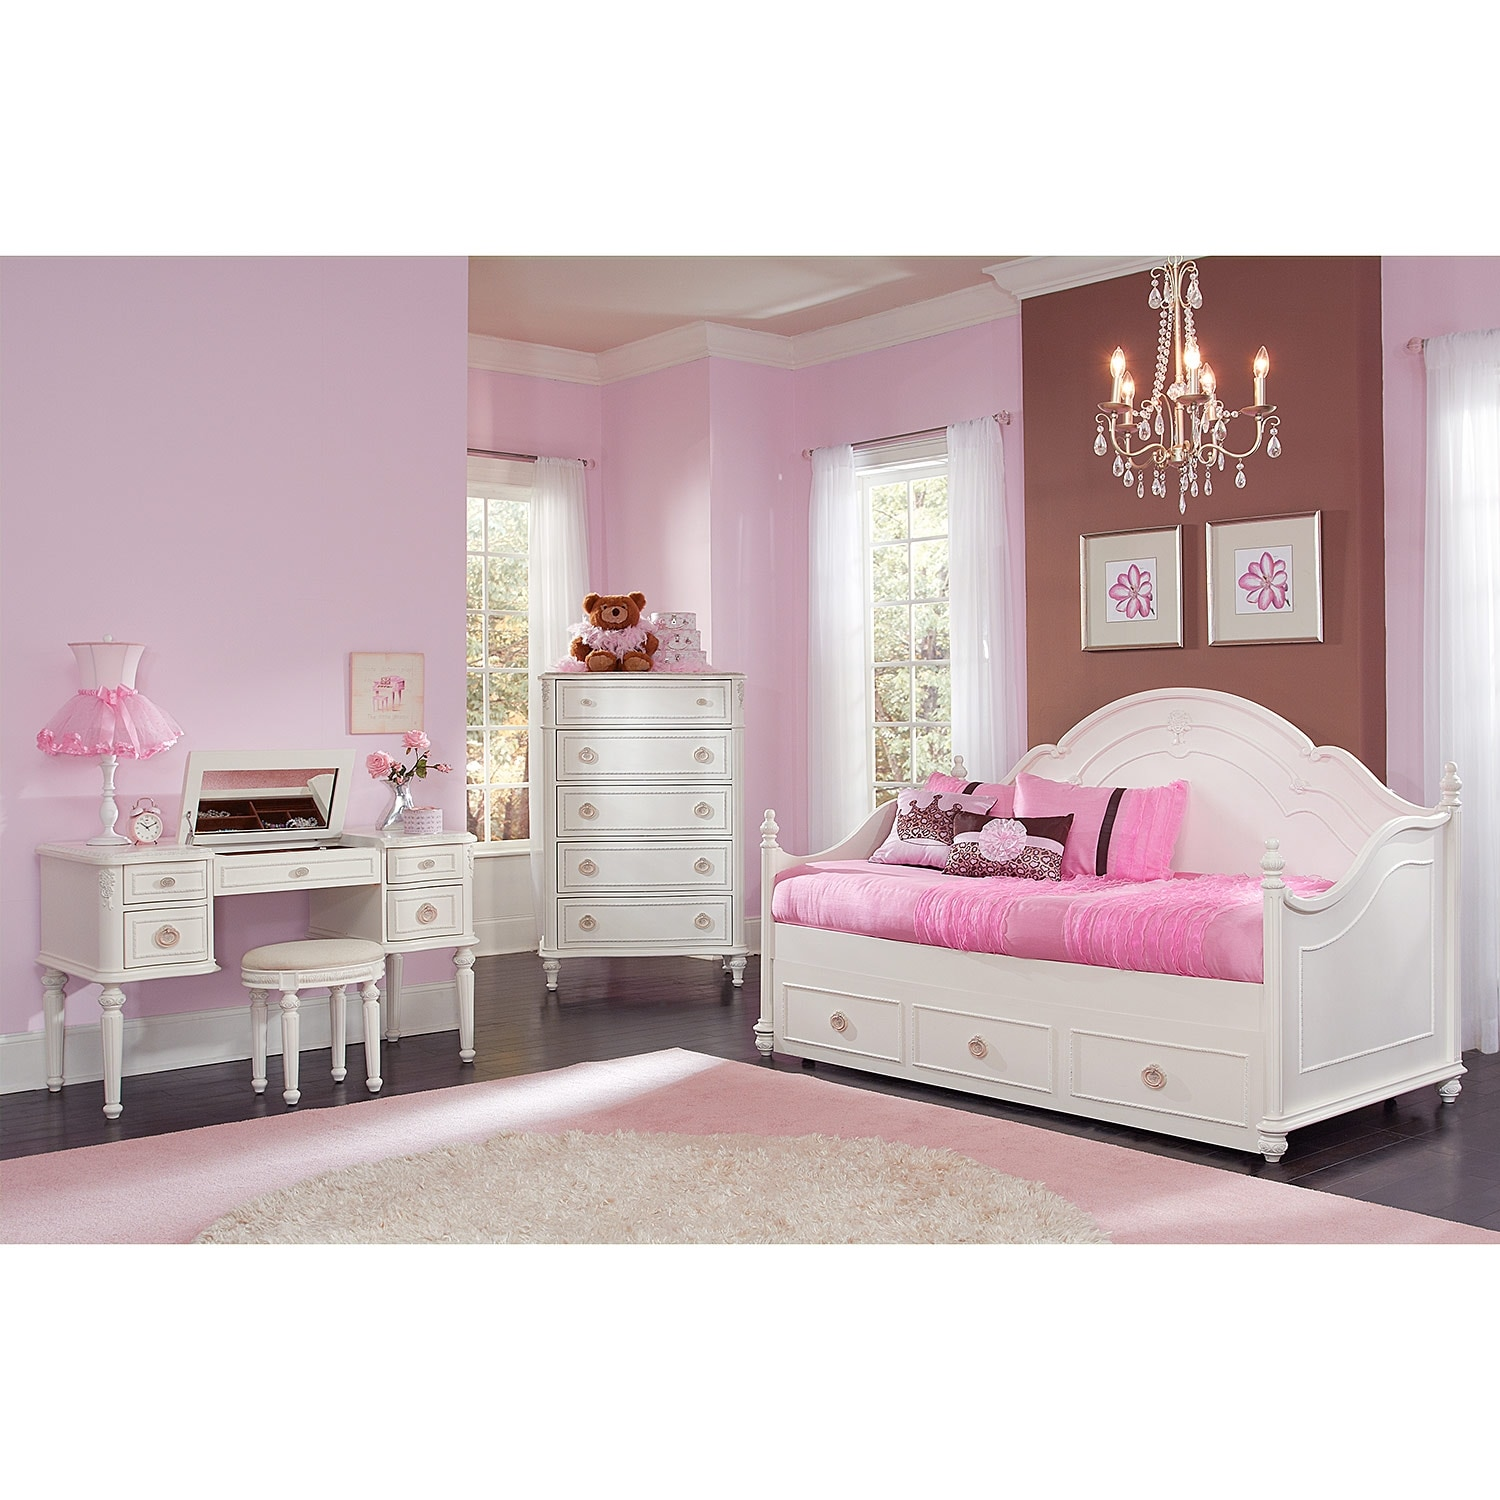 American signature furniture for Bedroom sets with mattress included